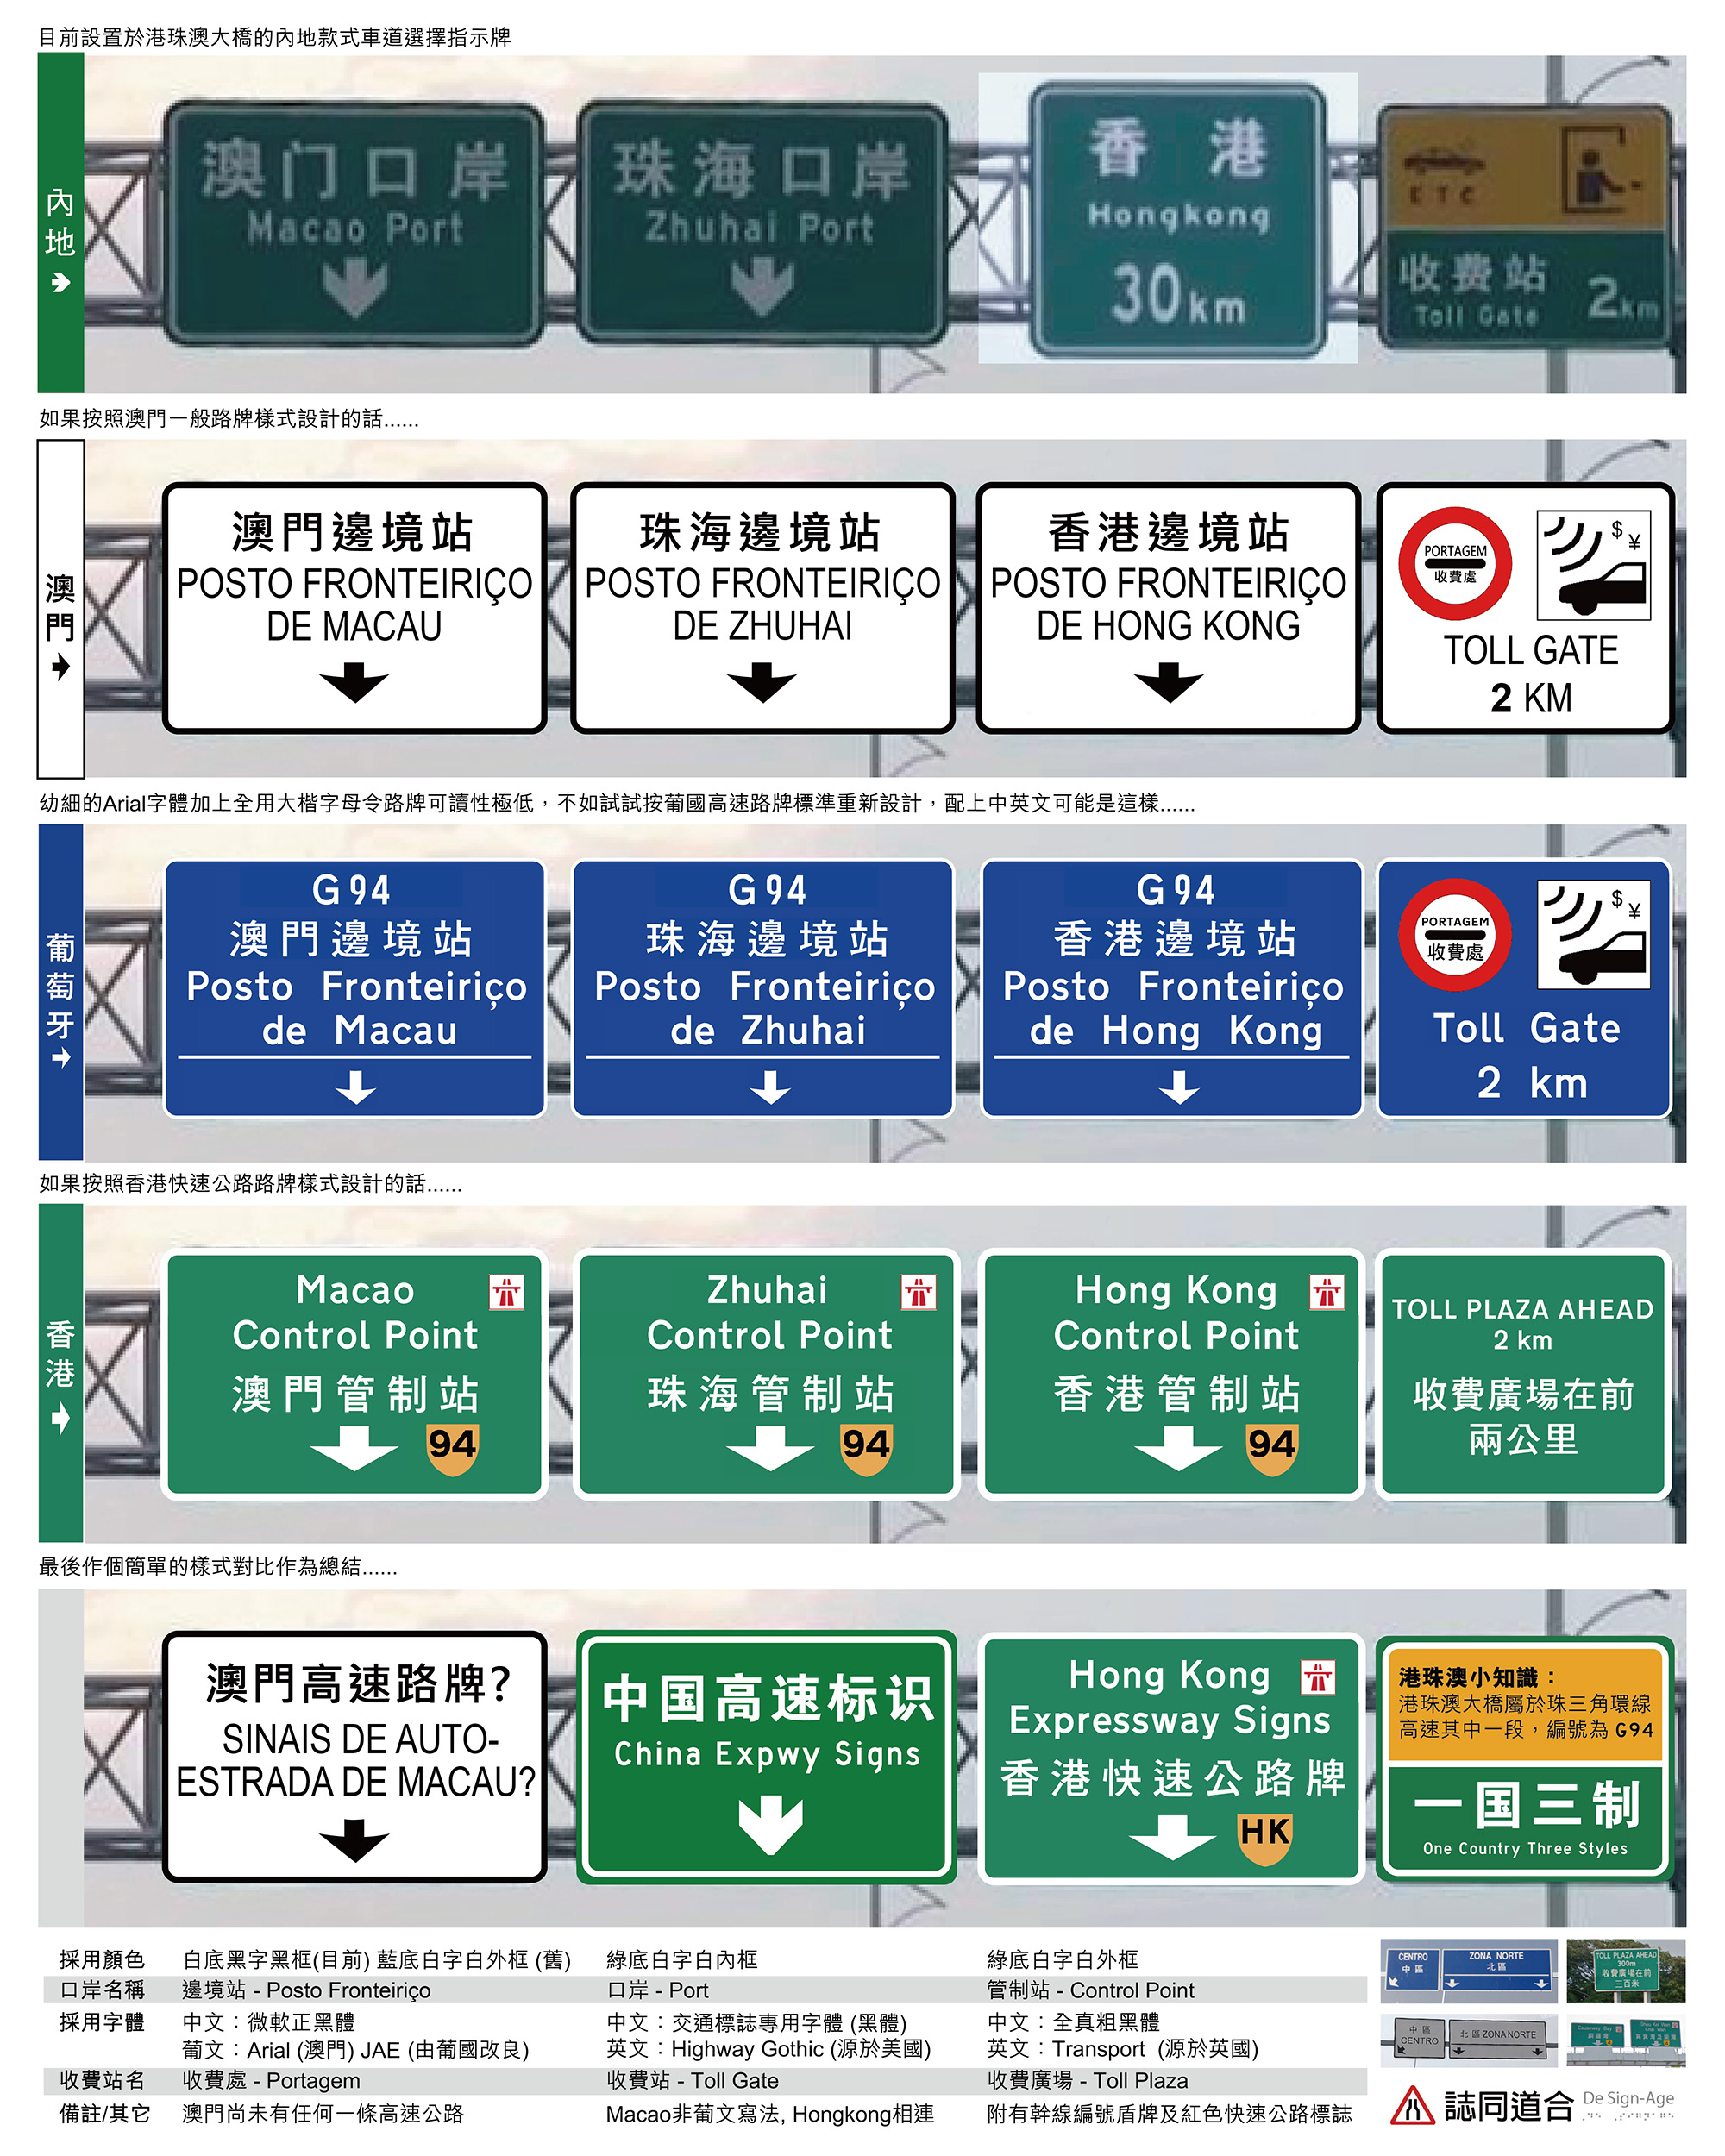 One Country: Three Styles - Although the Hong Kong-Zhuhai-Macau-Bridge, the world's longest cross-sea bridge, has finally linked the mainland with the two special administrative regions directly, each region has their own way to design the road signs for such large-scale infrastructure. A comparison from top to bottom: Mainland; Macau; Portugal (self-created as an alternative for the current Macau style) & Hong Kong